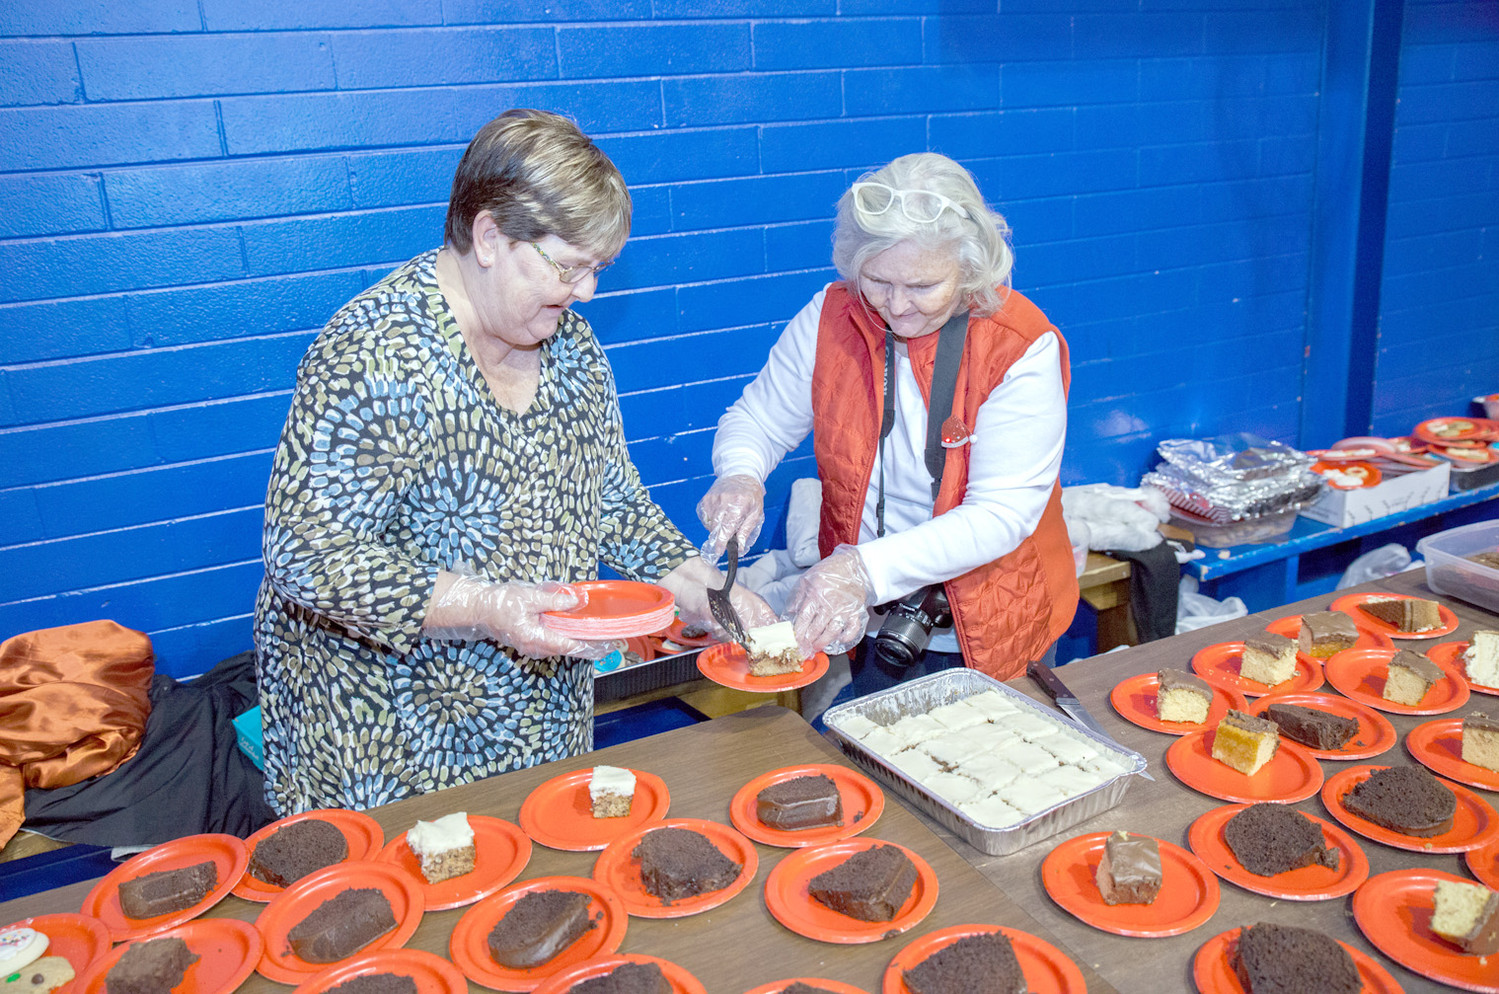 VOLUNTEERS Rhonda Jones, left, and Gerri Rominger prepare the sweet dessert table servers will visit to fulfill their table's orders.